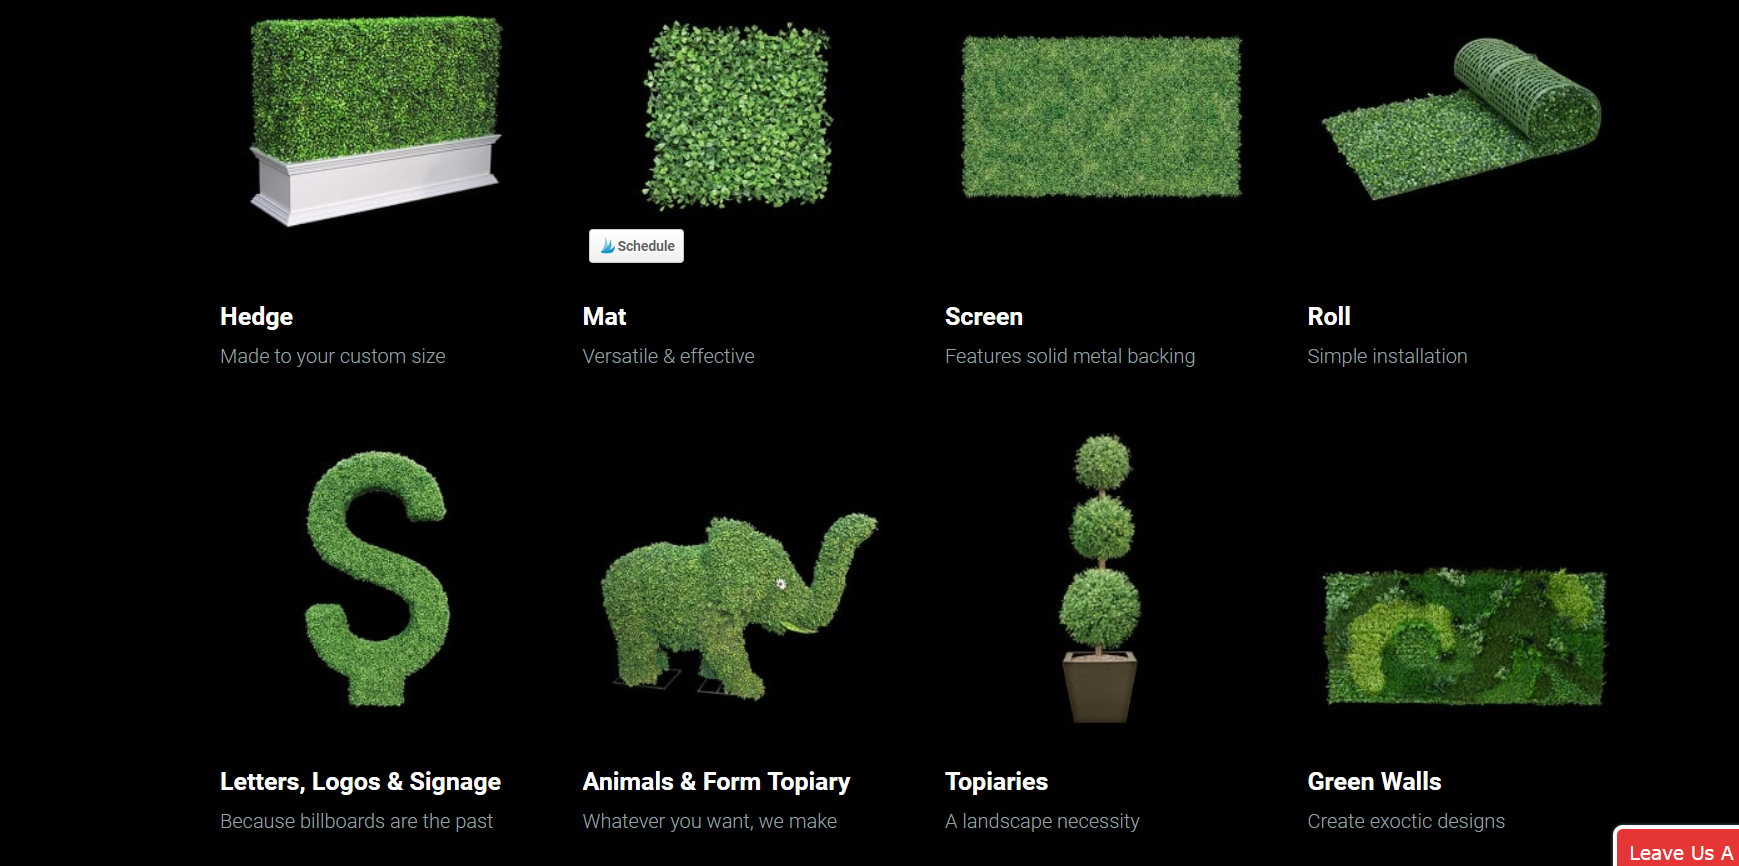 My Kind of Green - Beautifying Home & Garden with Hedgescapes